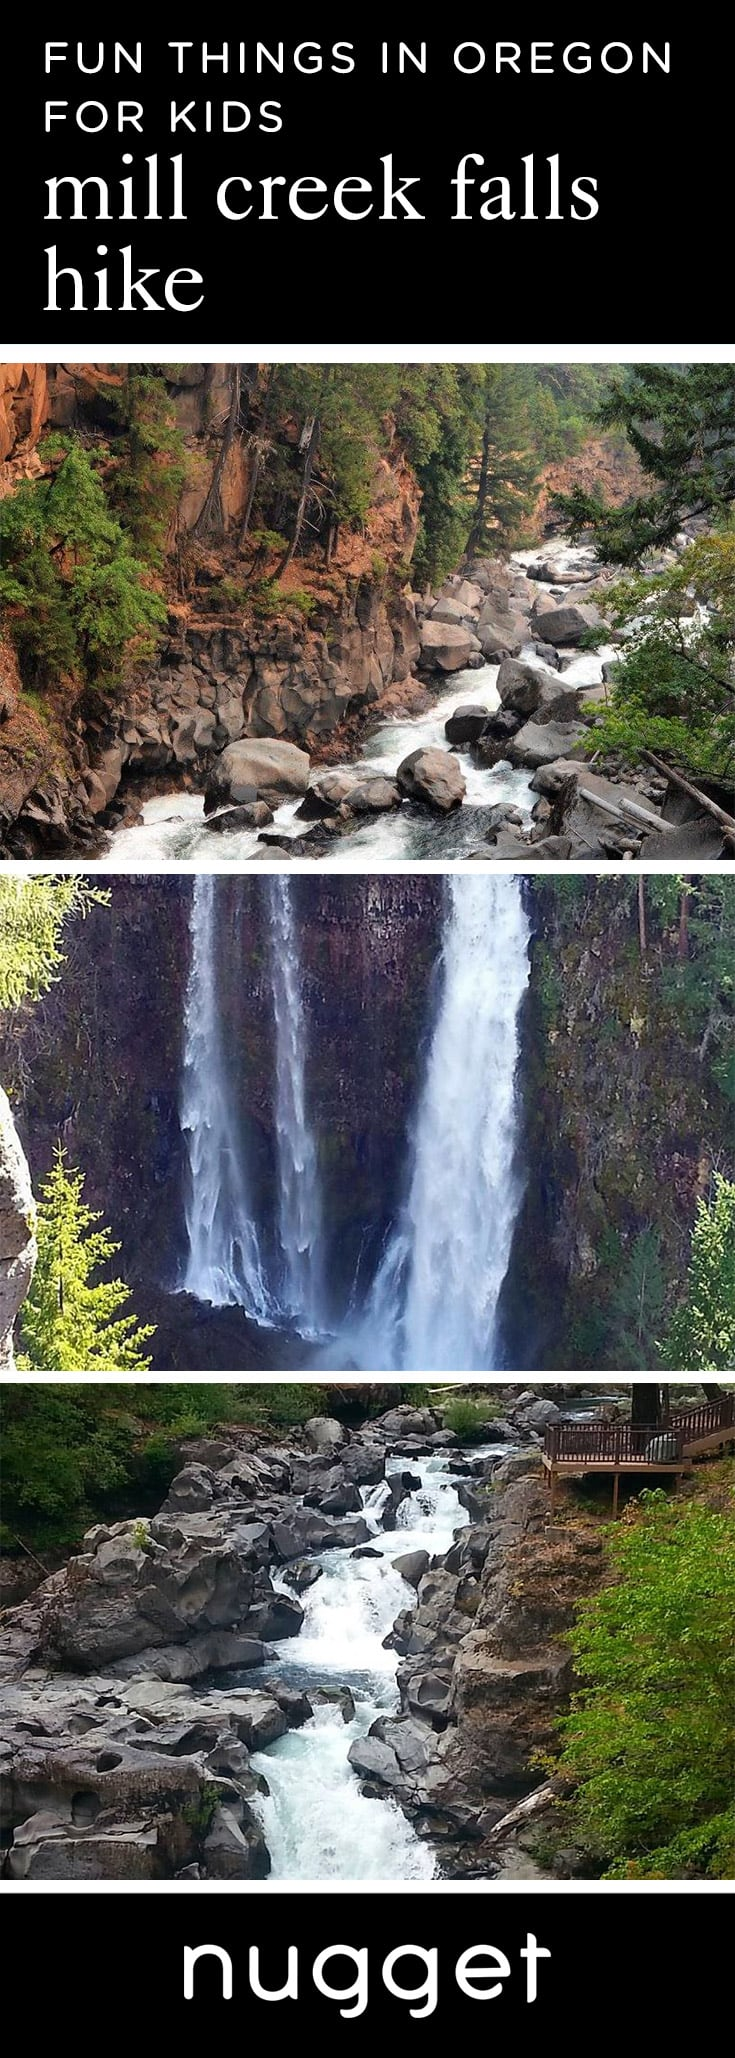 3 Easy Kid-Friendly Waterfall Hikes in Prospect, Oregon